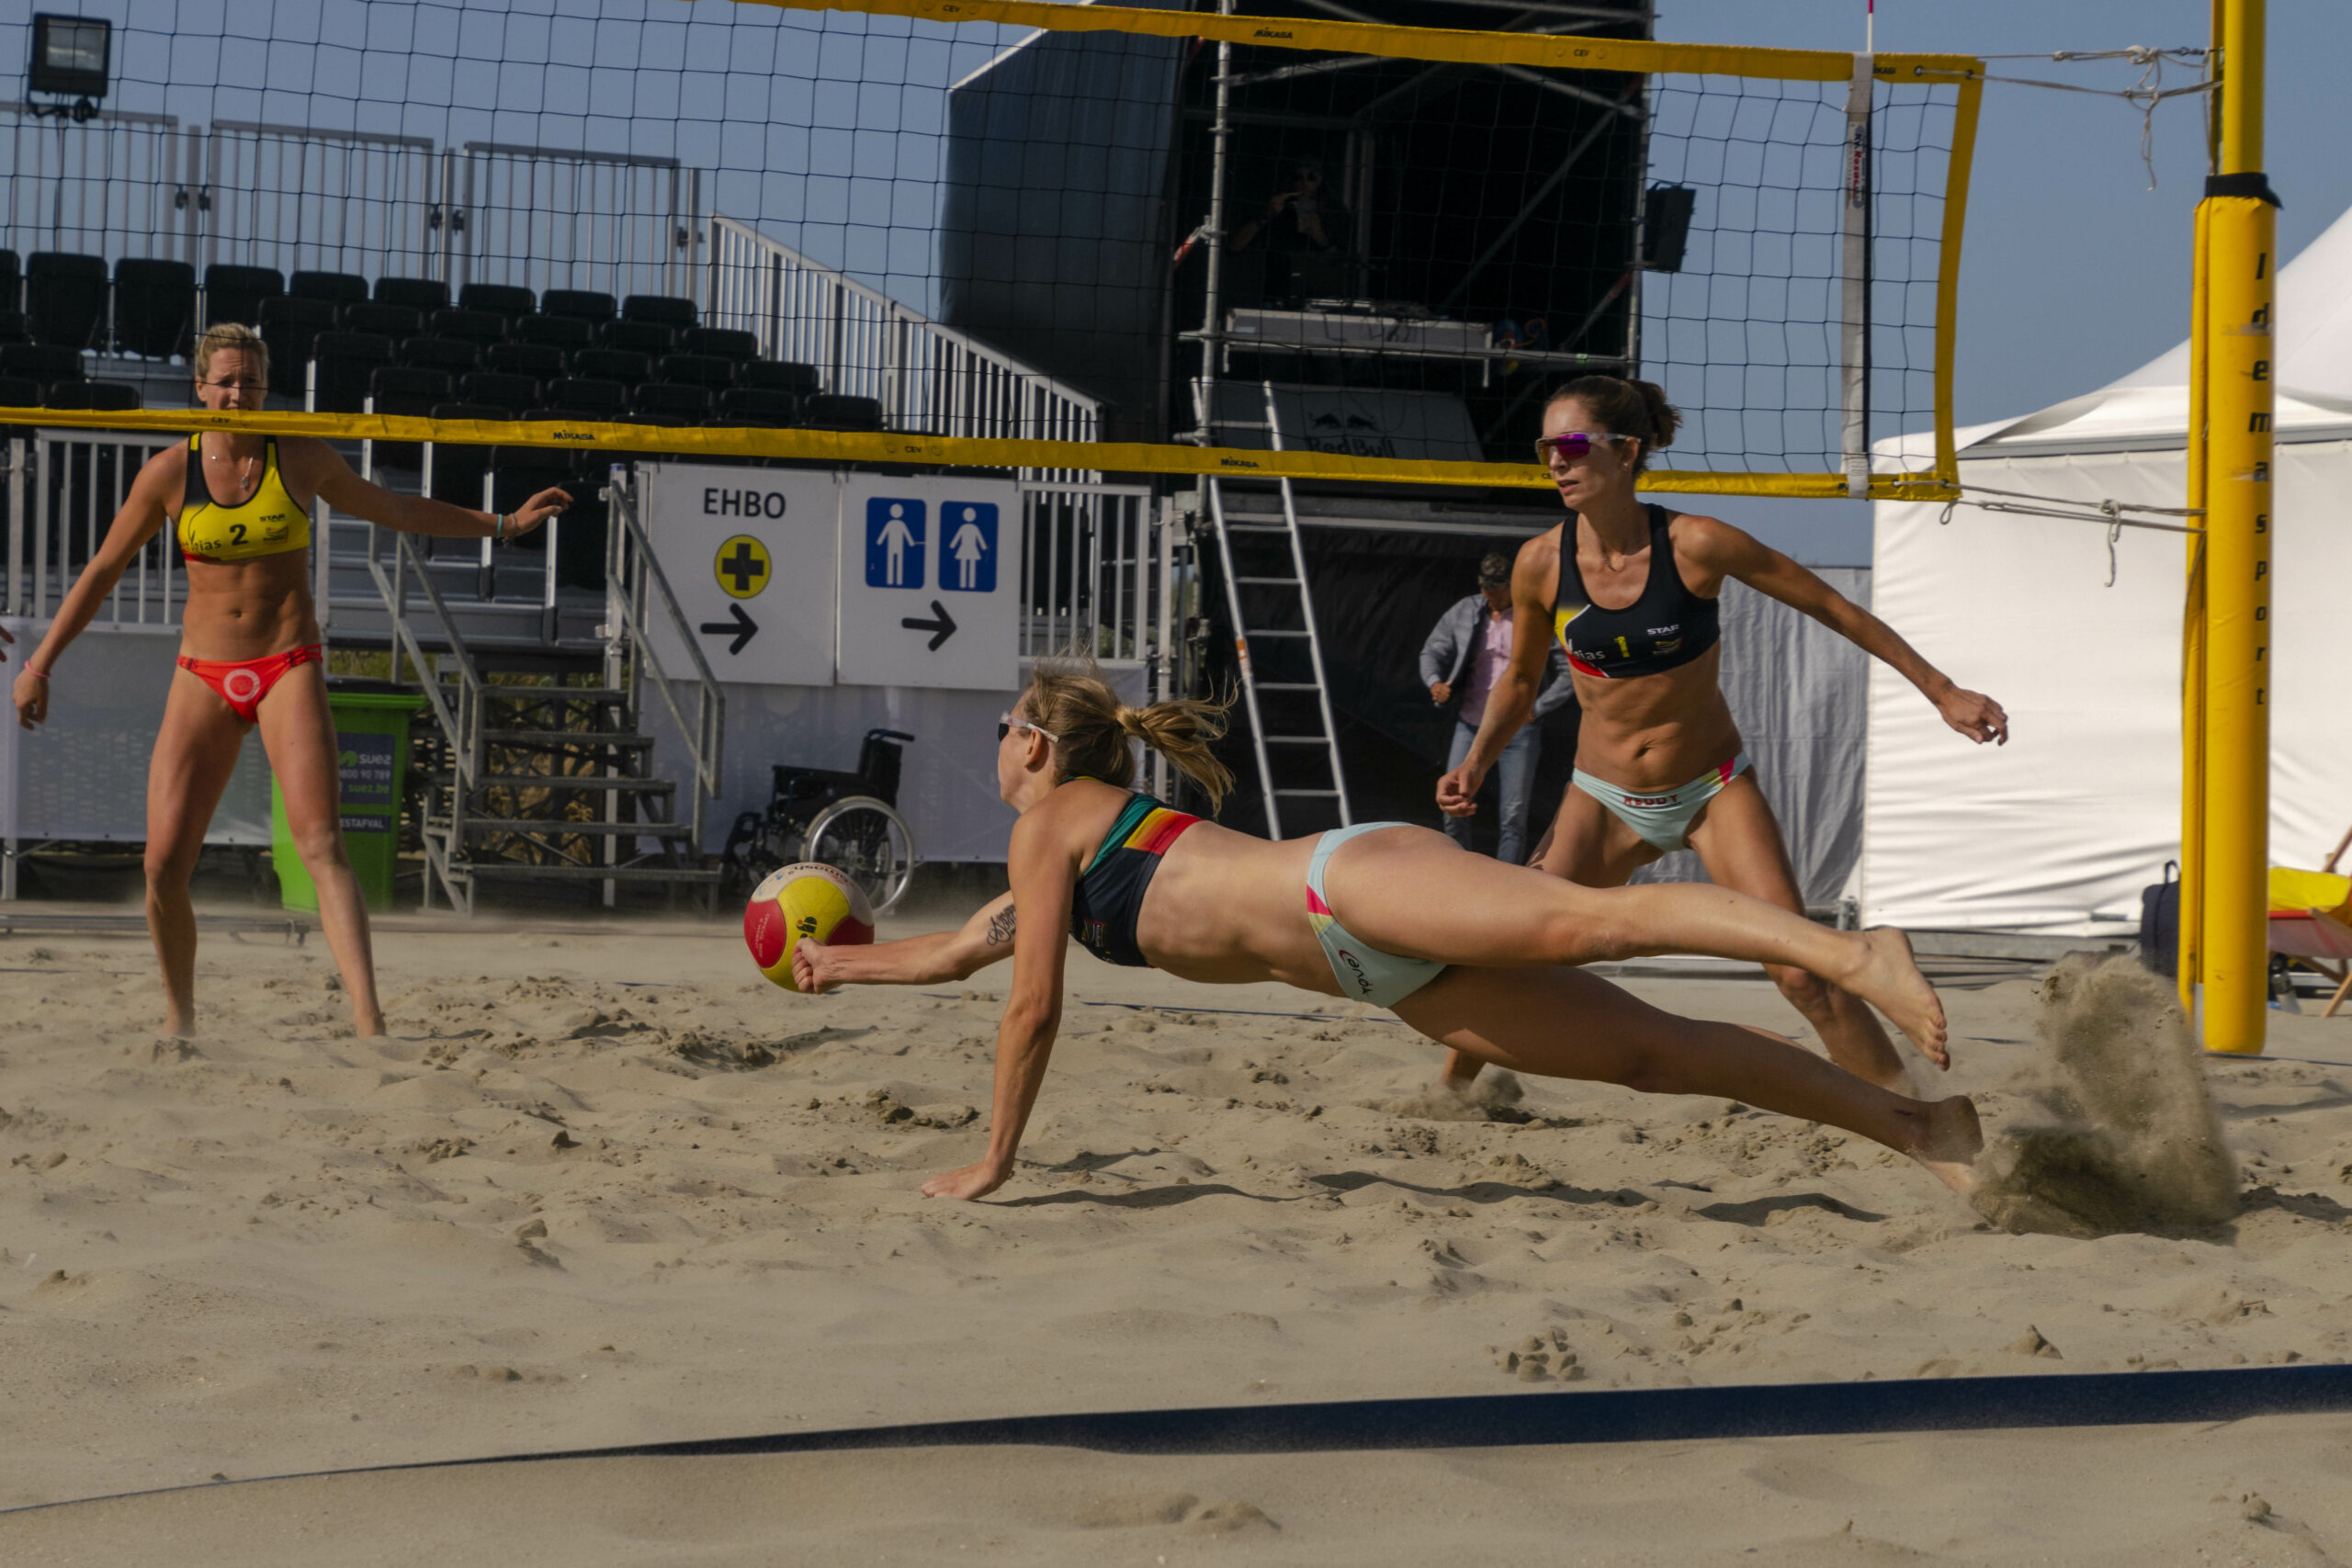 Beach-volley-8-scaled.jpg